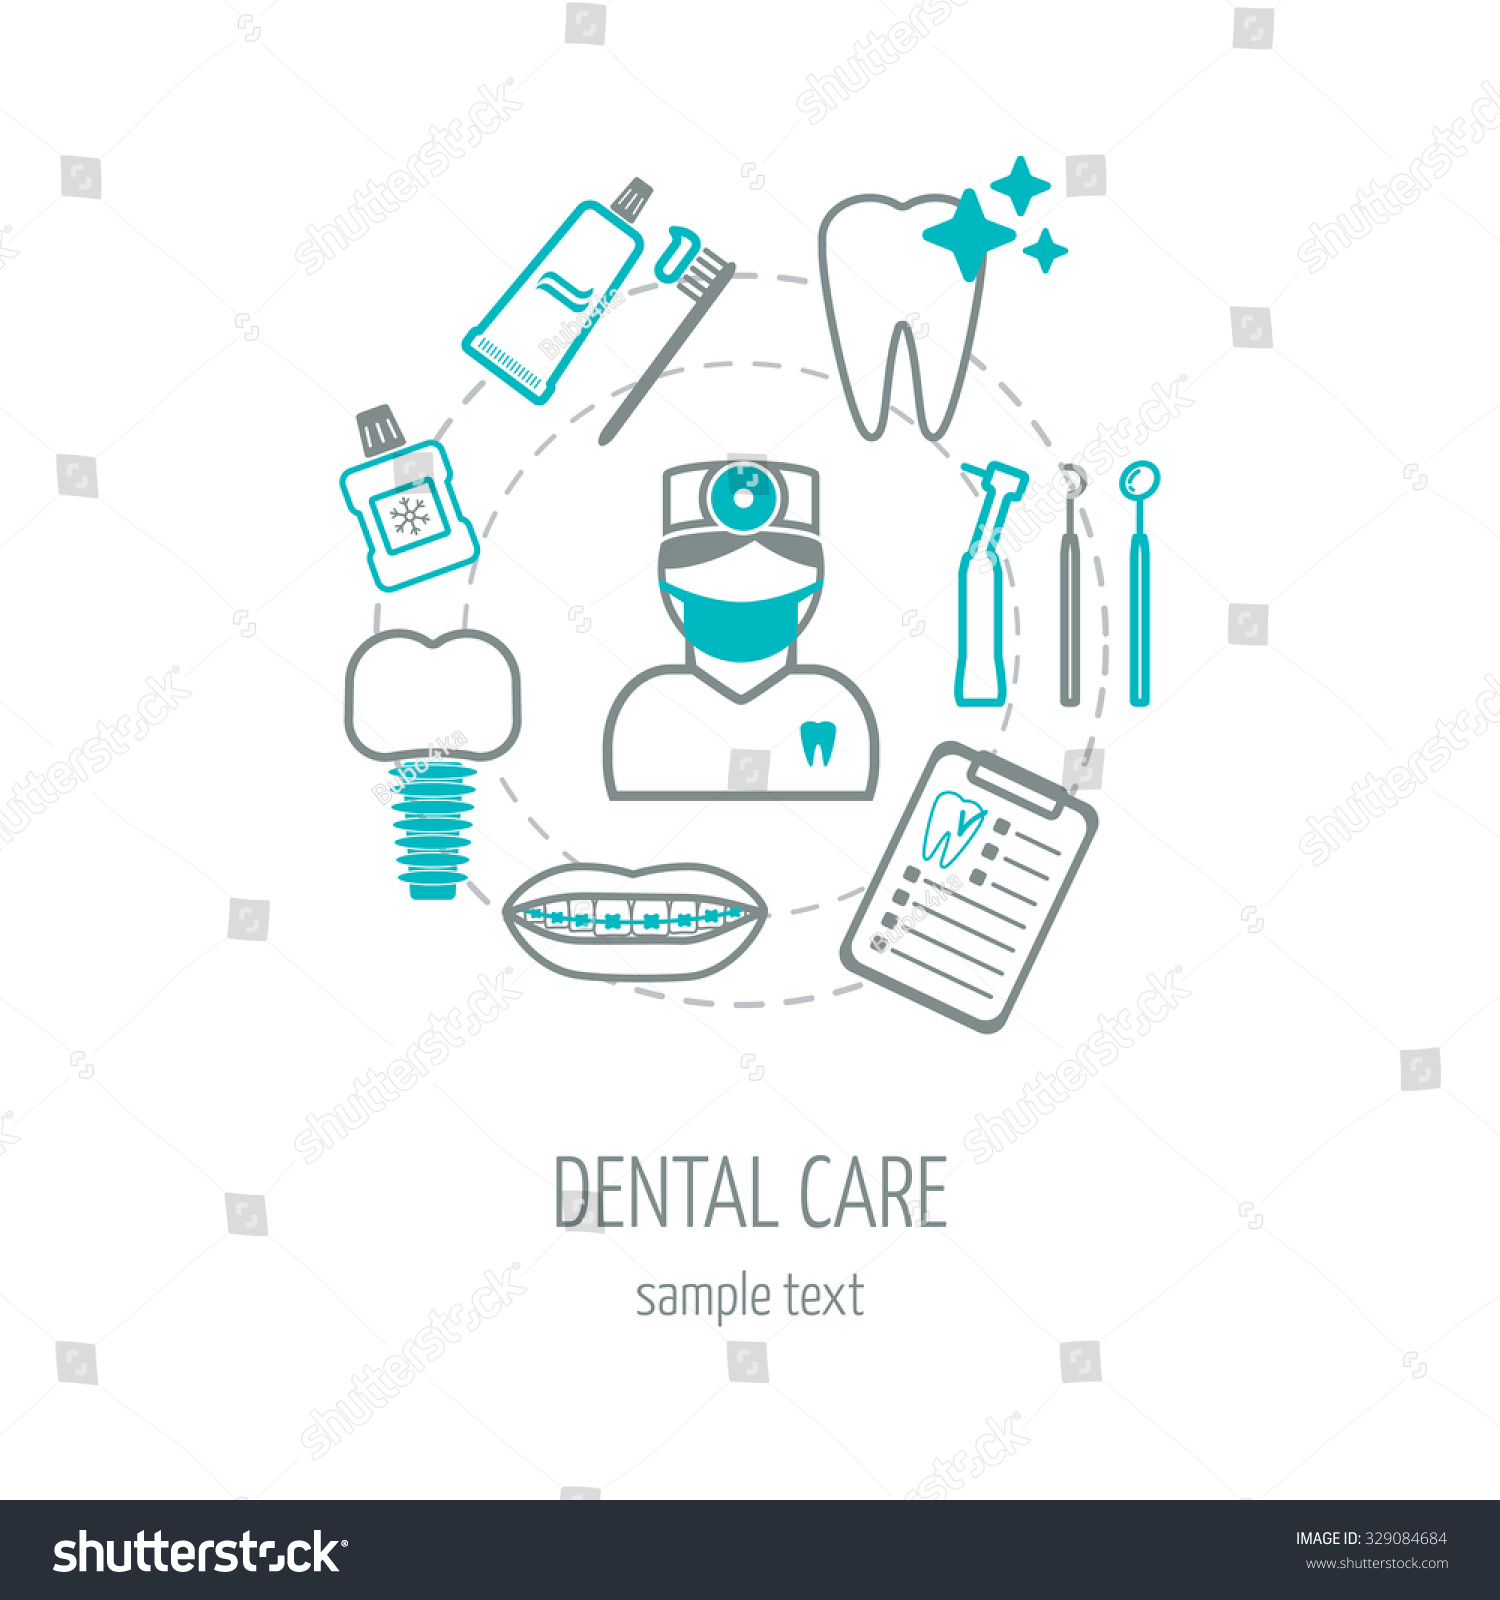 stock-vector-dental-clinic-banner-backgr